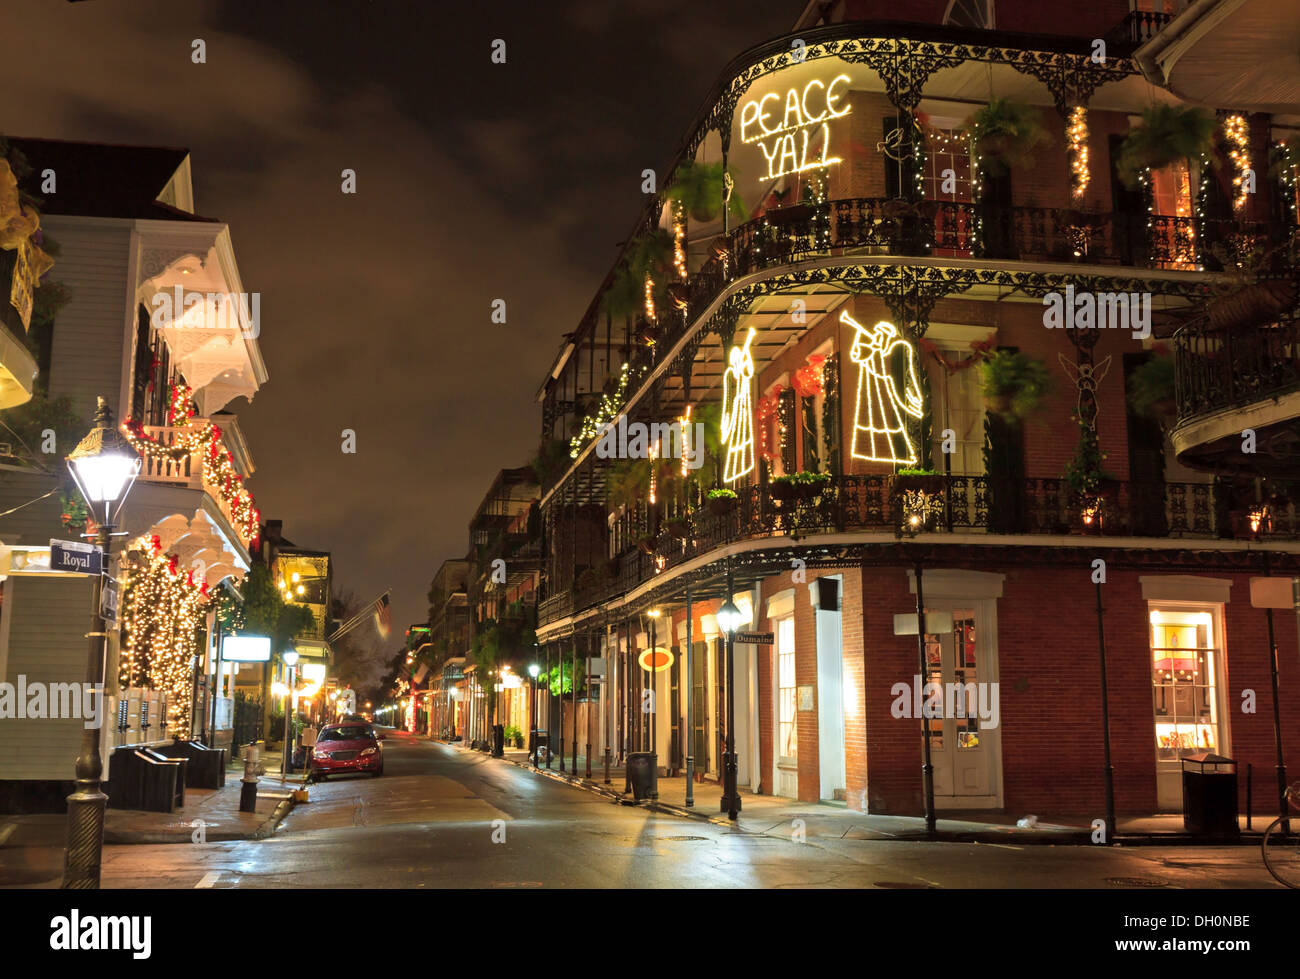 Christmas Lights on the corner of Royal and Dumaine Streets spell out 'Peace Y'All' in the French Quarter of New Stock Photo